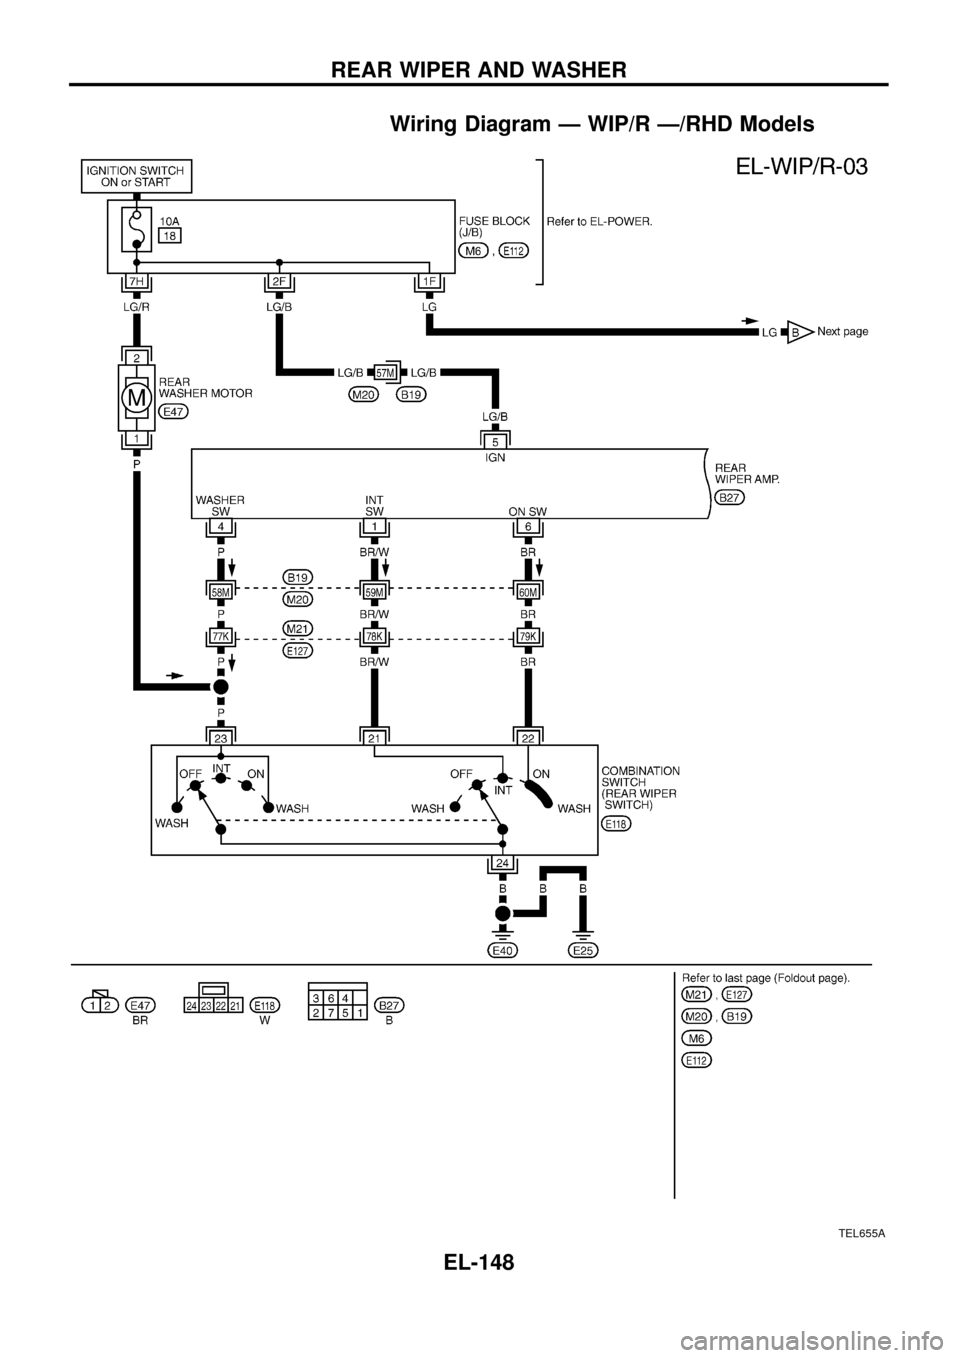 Automotive Wiring Diagrams Page 54 Of 301 - Wiring Diagrams DataUssel